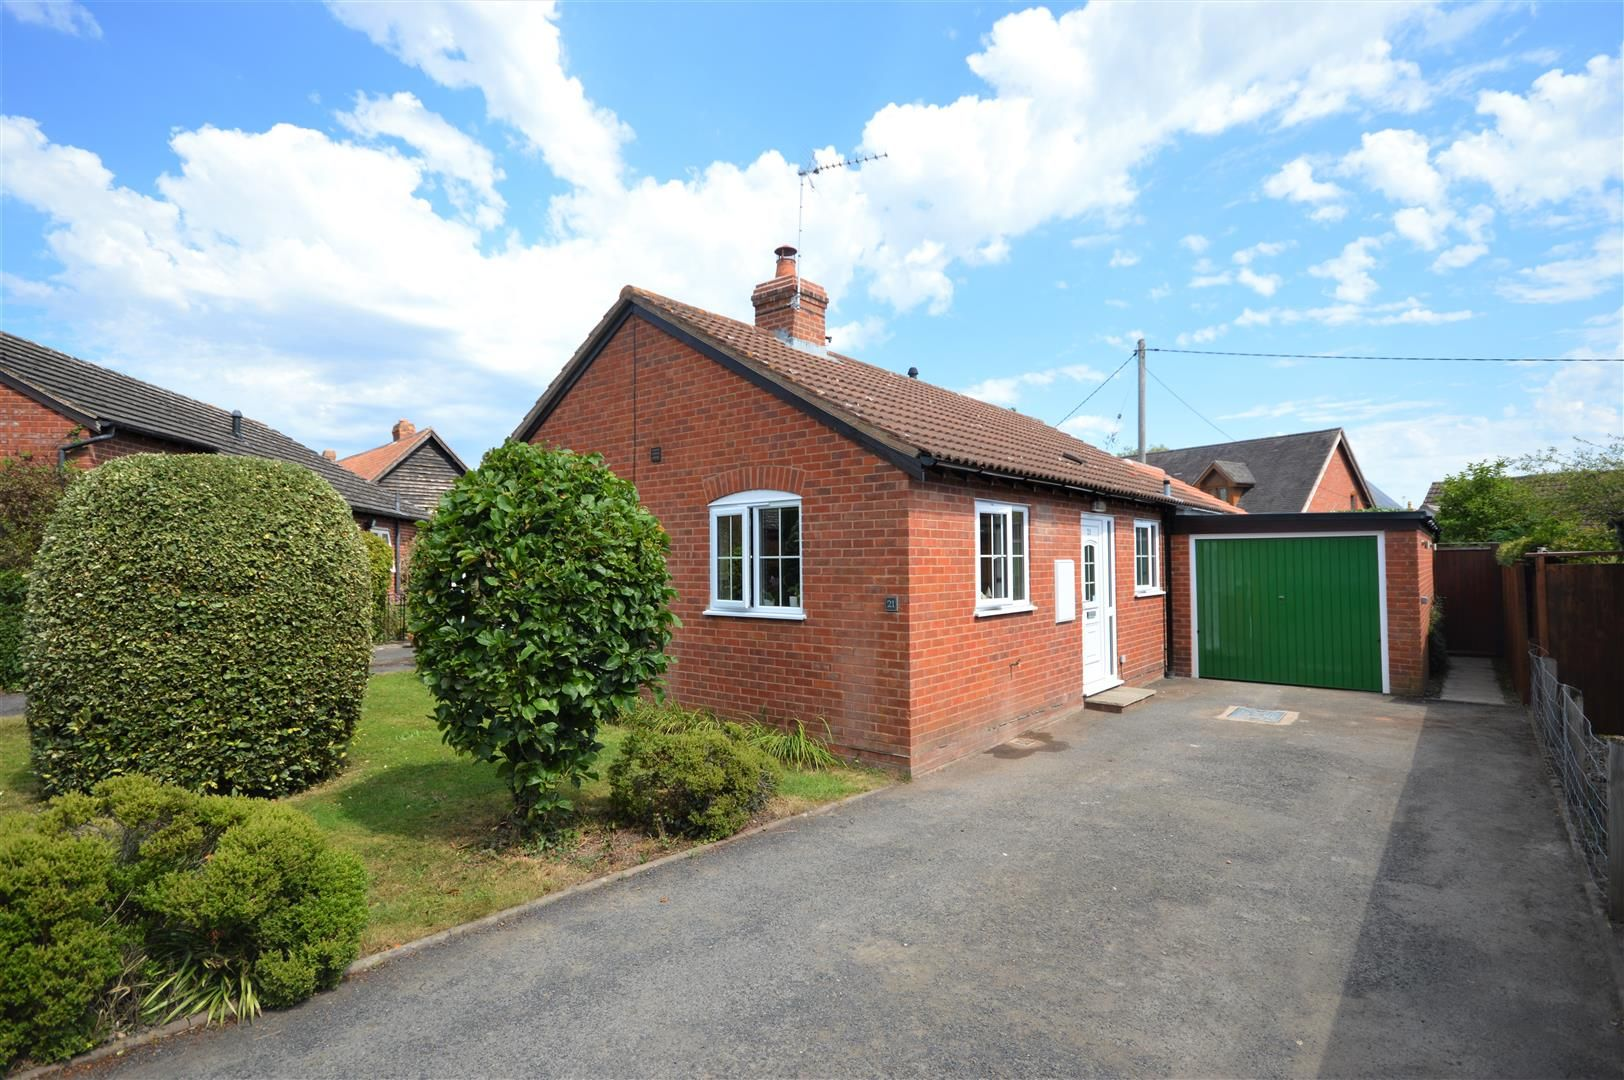 2 bed detached bungalow for sale in Luston, HR6